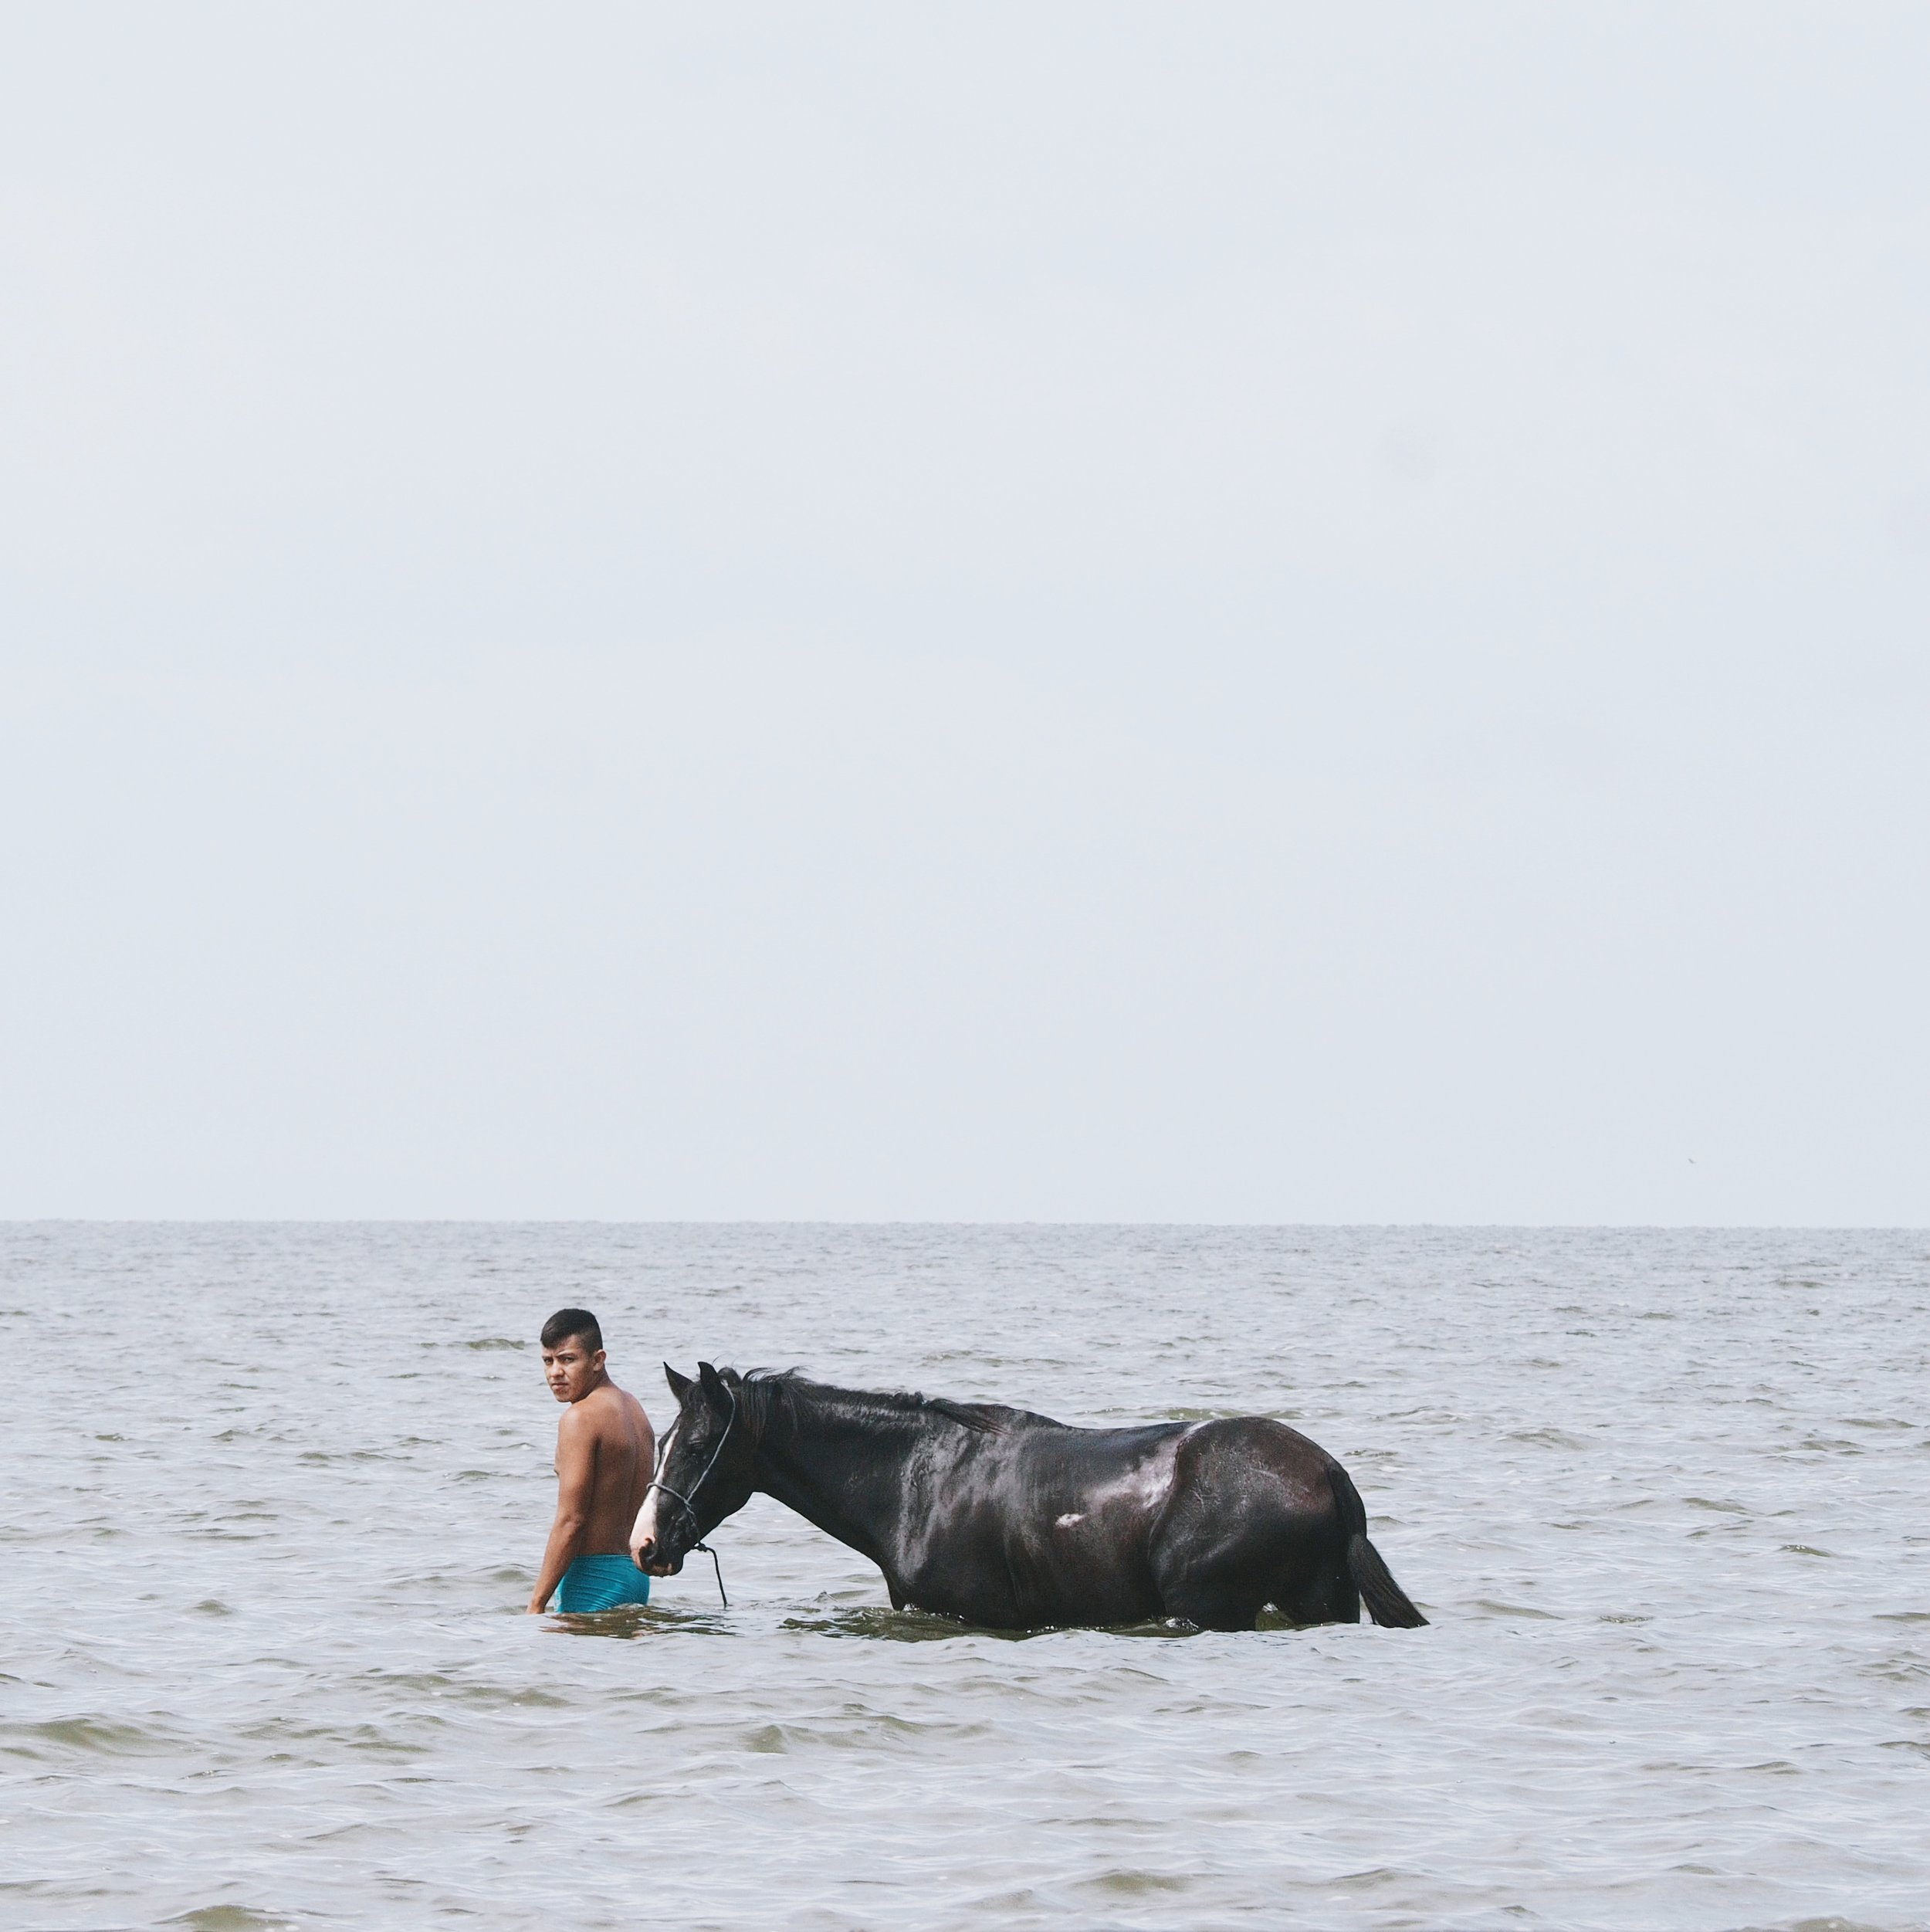 In the late afternoon we stopped lakeside for a dip and saw this local guy bathing his horse in the lake.